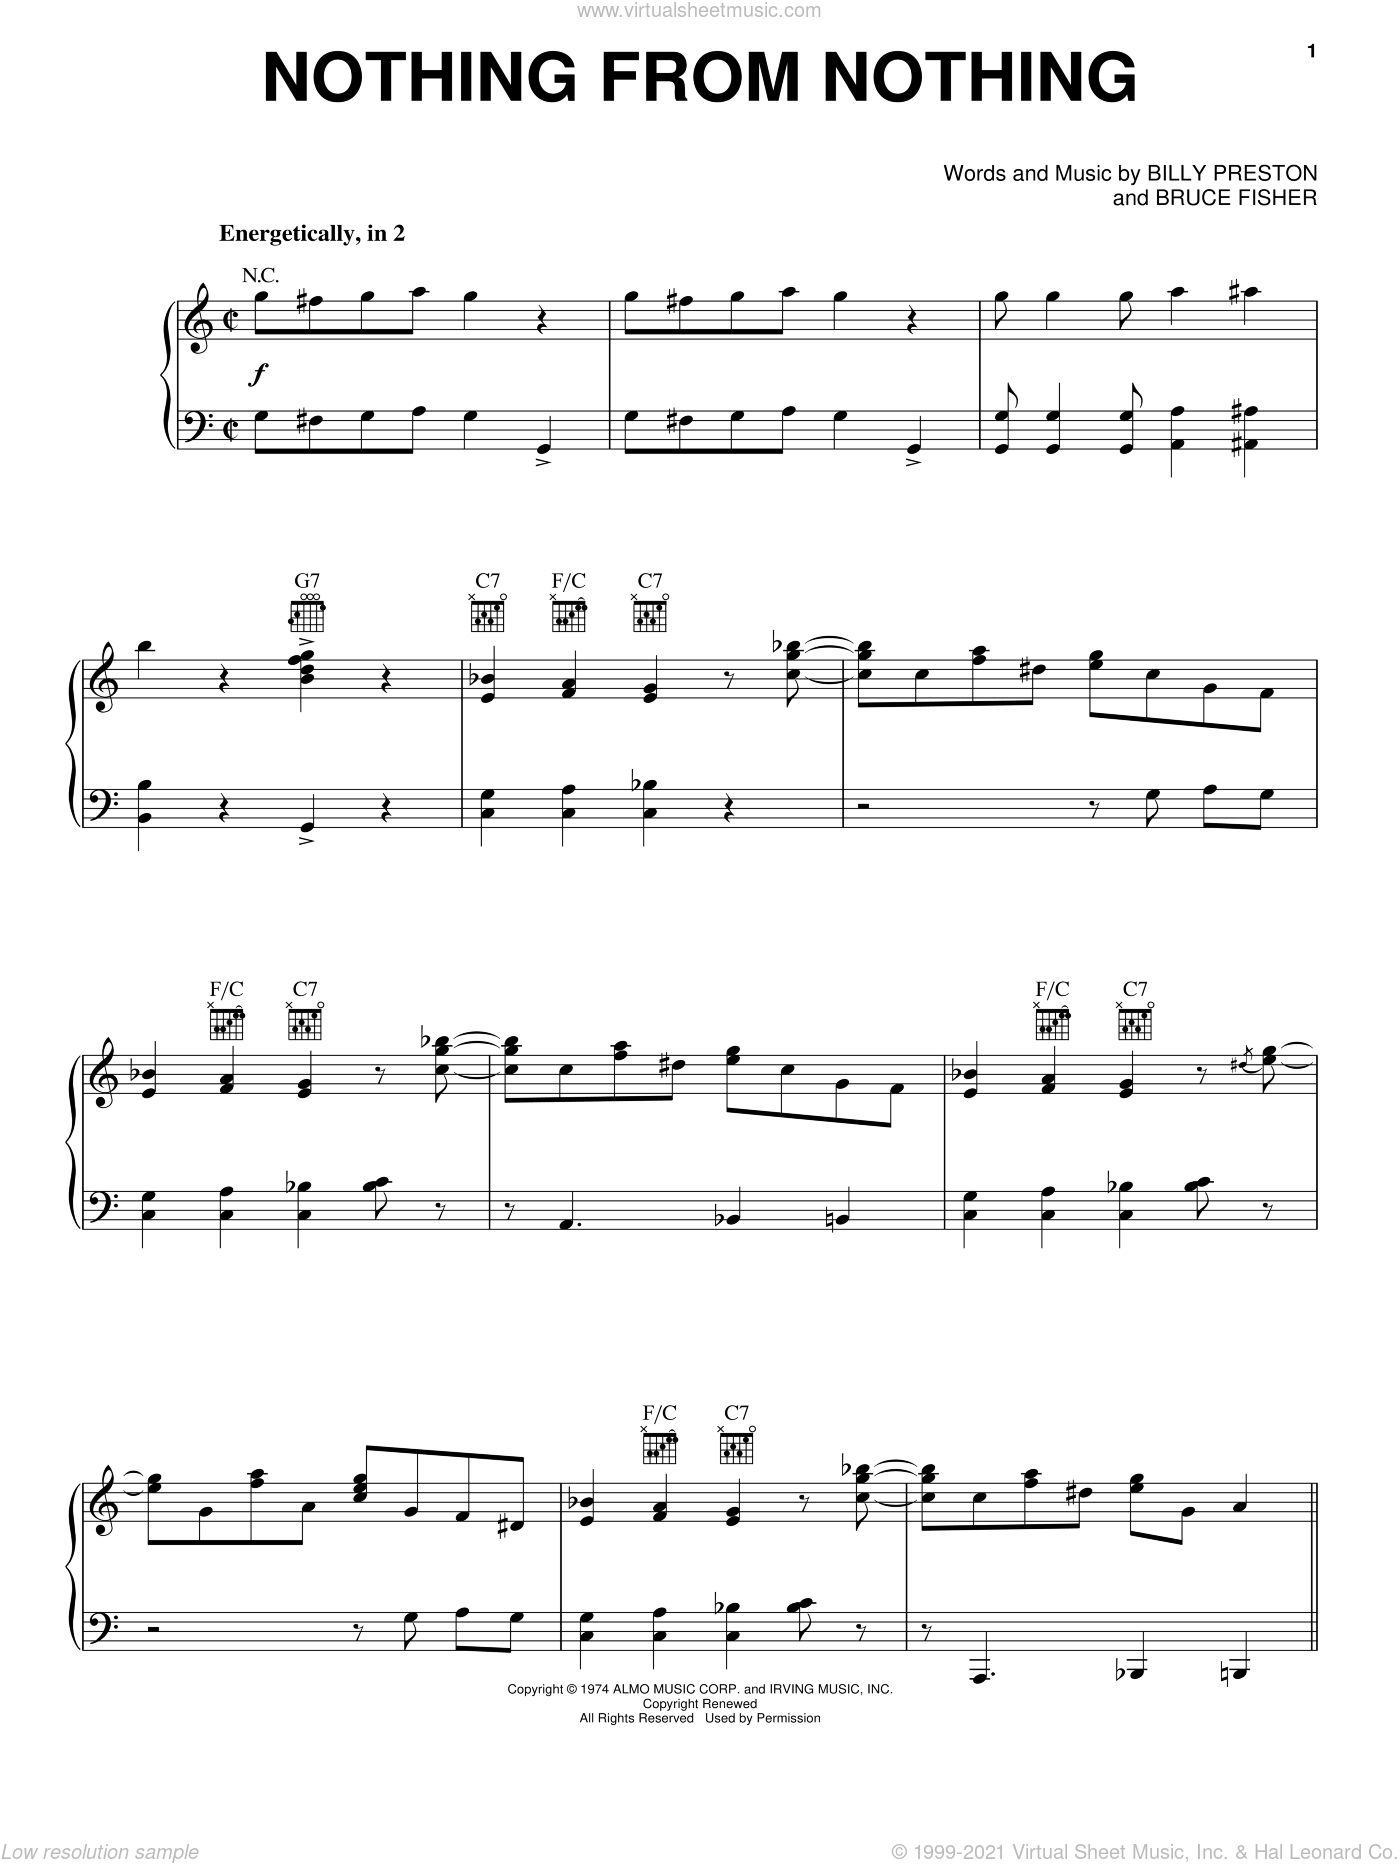 Nothing From Nothing sheet music for voice, piano or guitar by Bruce Fisher